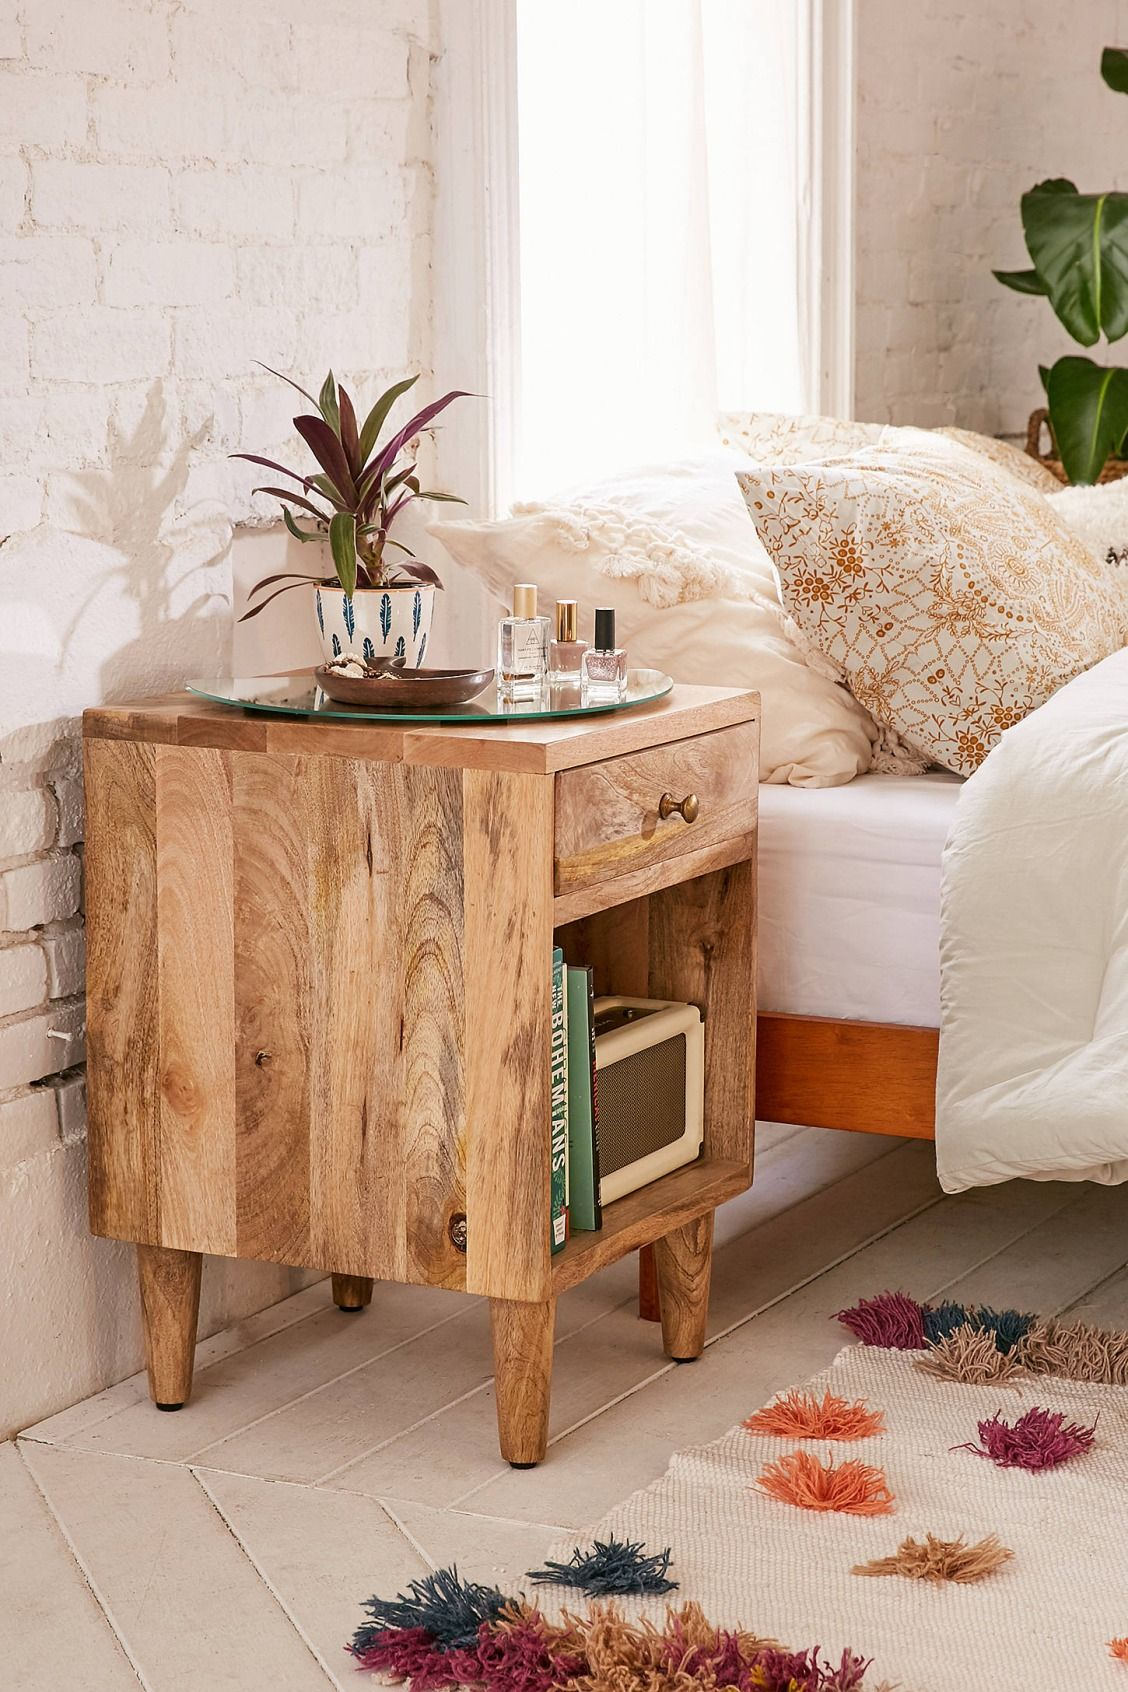 Casa Decoración Hogar Amelia Nightstand En 2019 Bedroom Casas En Mexico